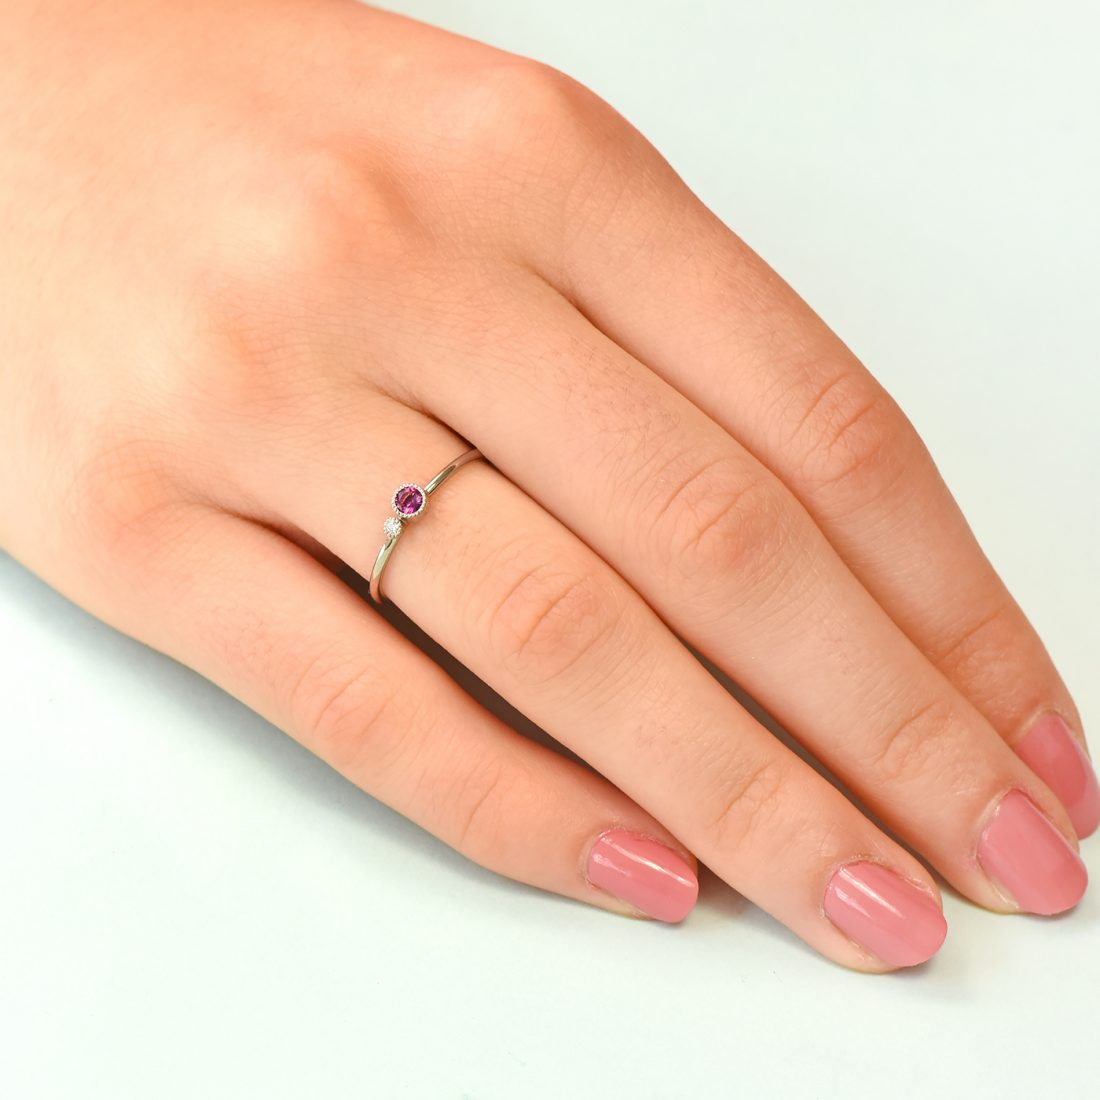 tourmaline birthstone stacking ring